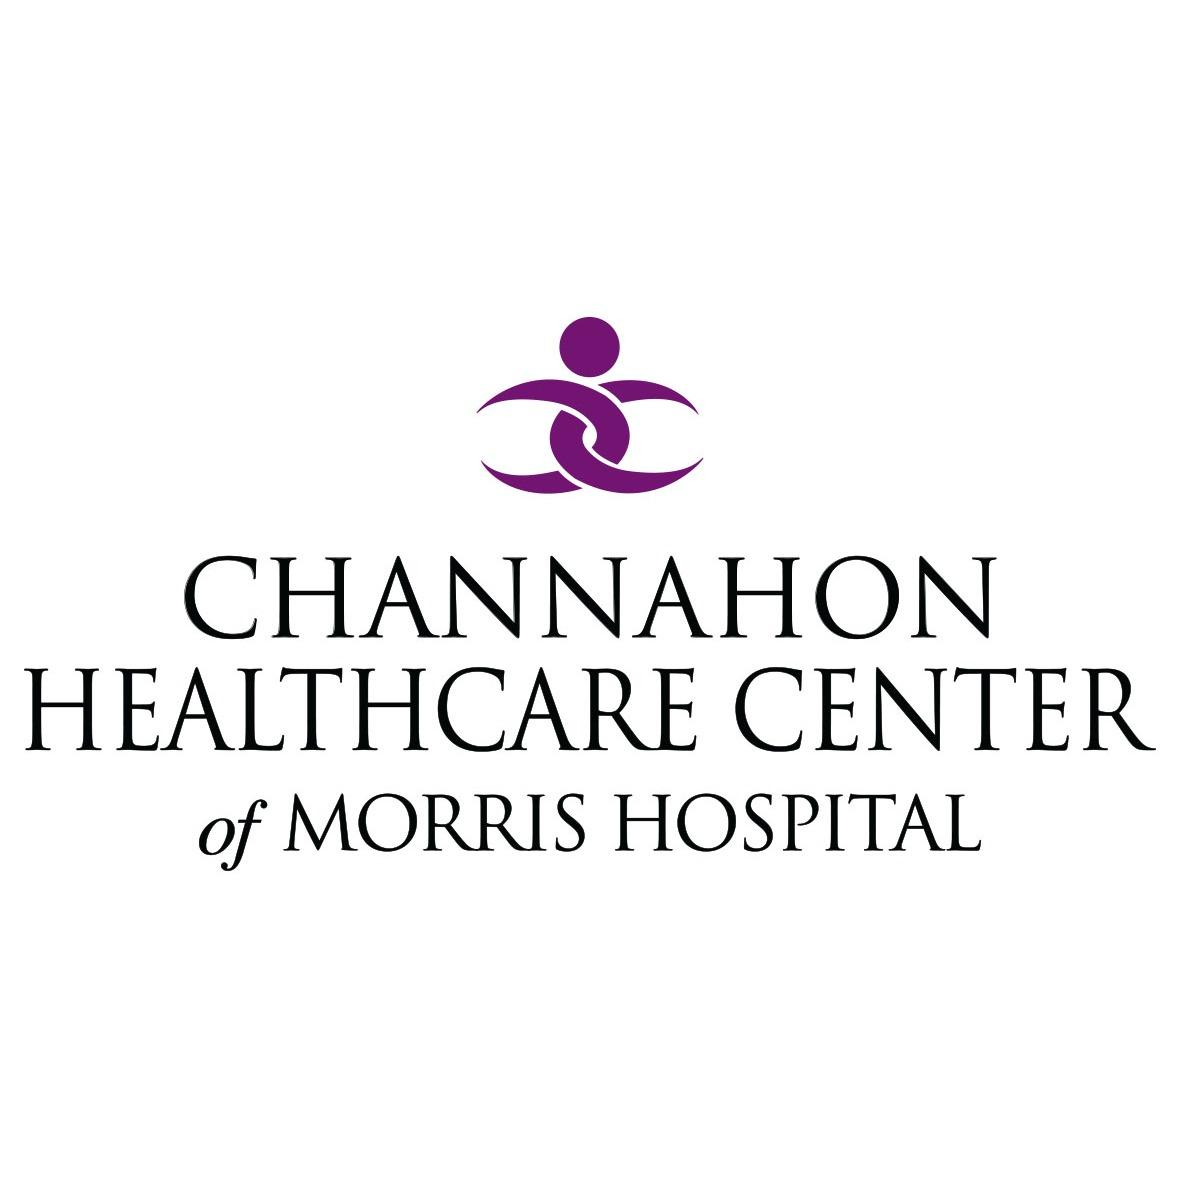 Channahon Healthcare Center of Morris Hospital